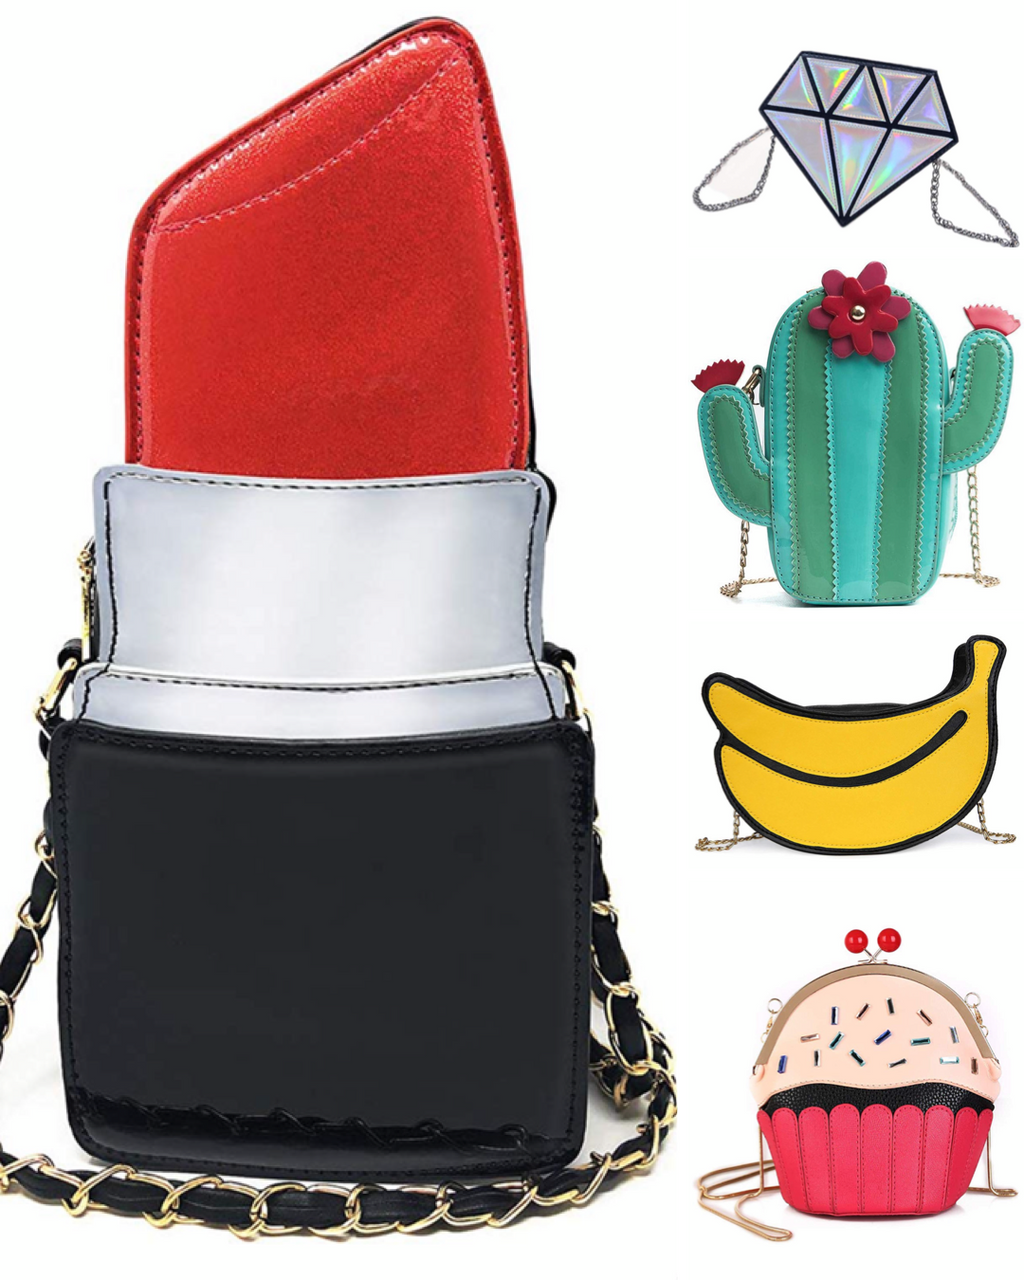 Novelty Purses: Lavish Lipstick, Diamond Princess, Cactus Chic, Banana Fresh & Cupcake Cutie